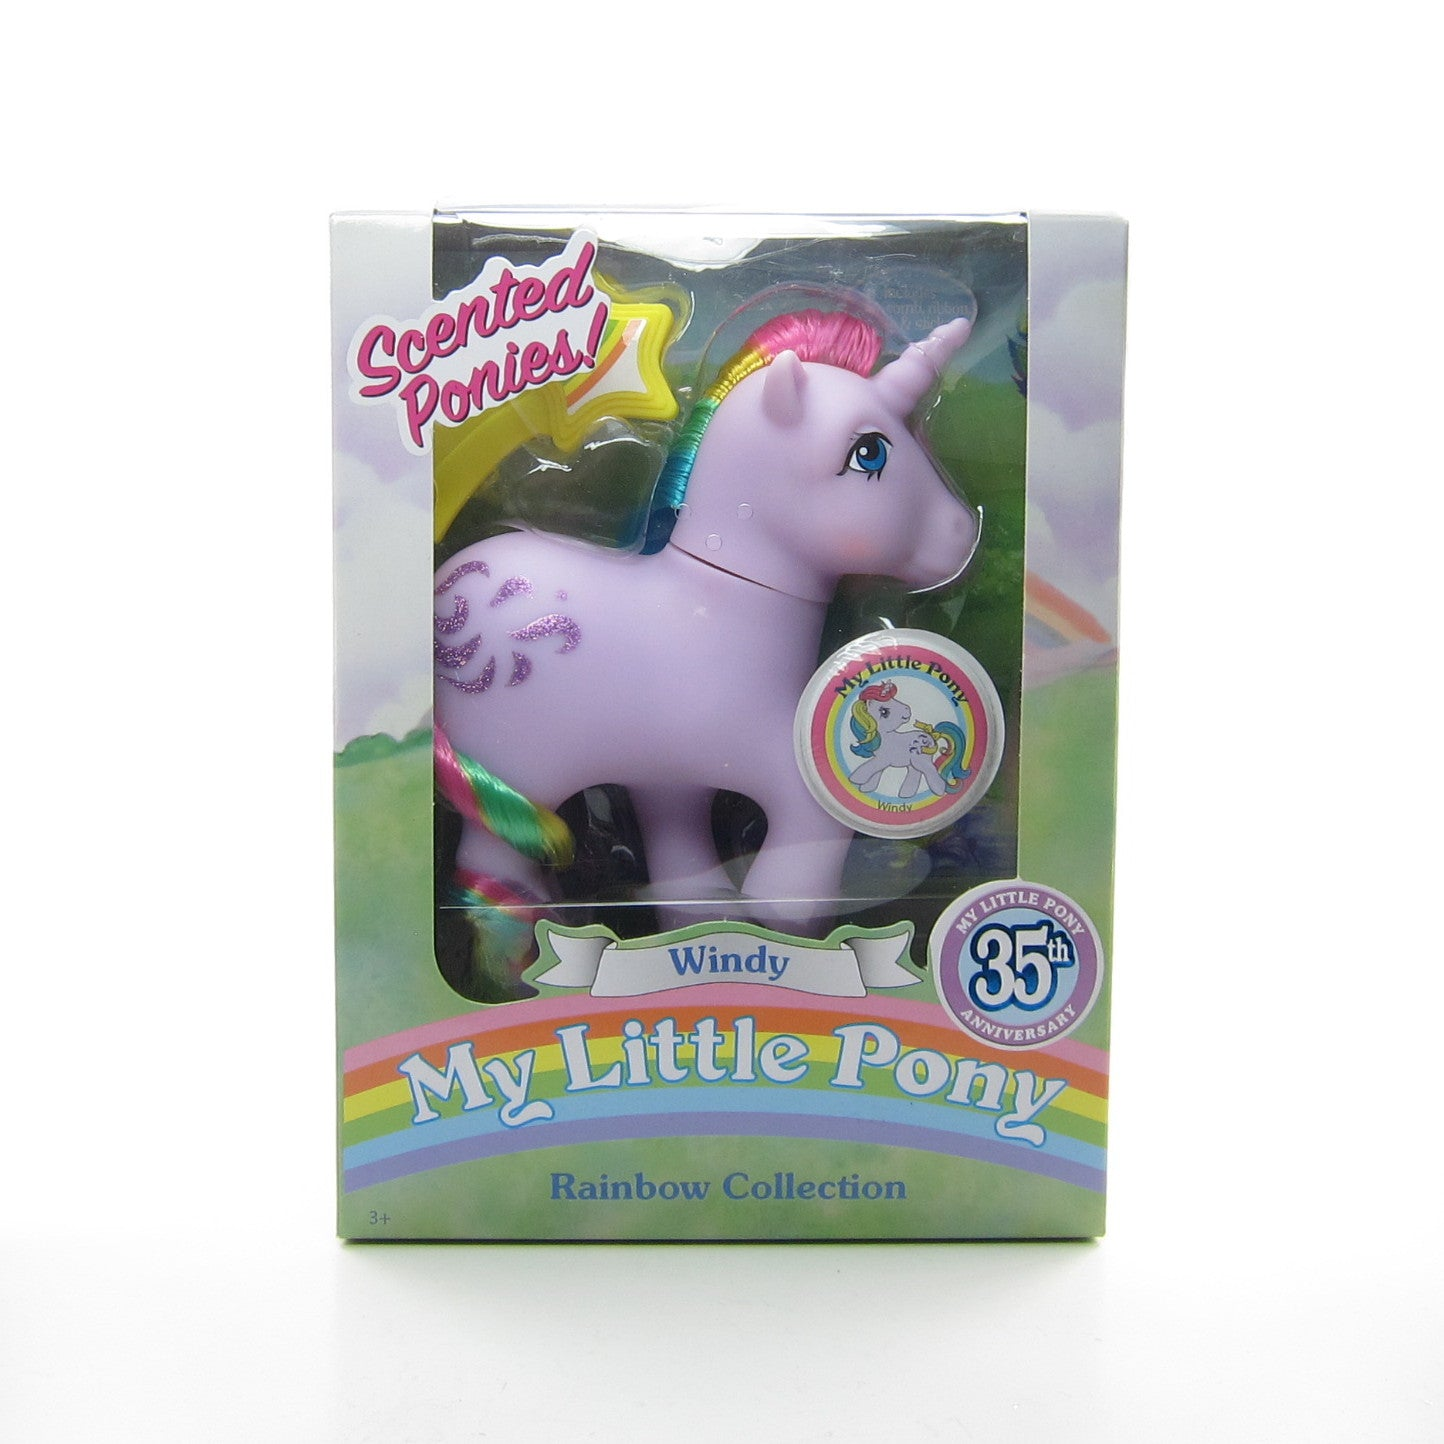 Windy Scented Ponies My Little Pony 35th Anniversary